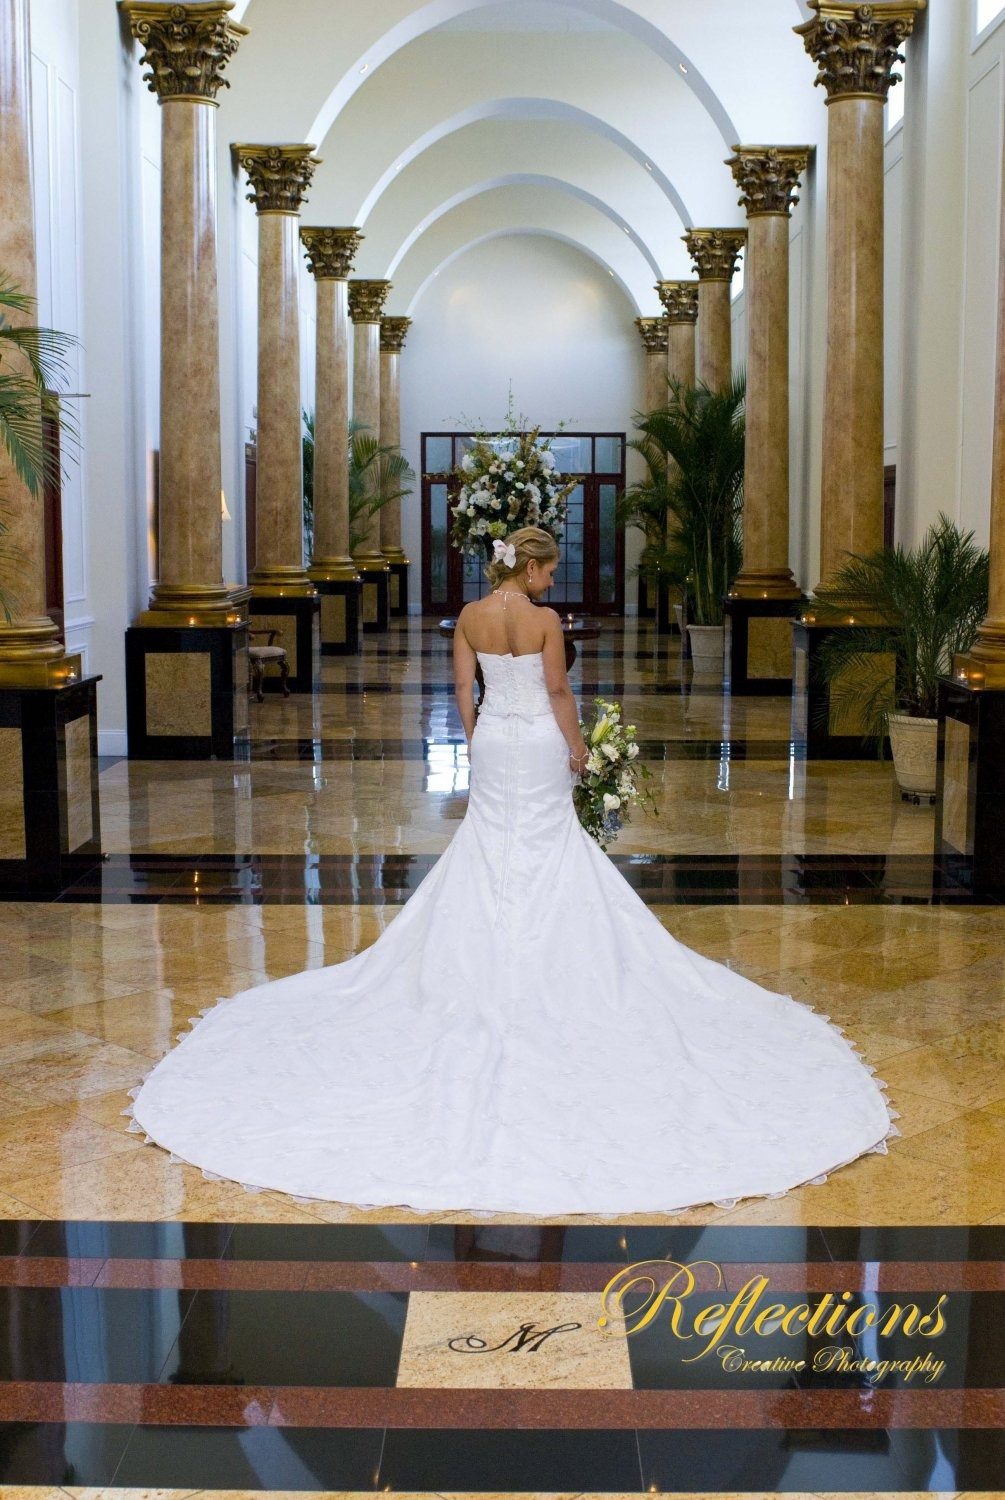 Bridal Gowns & Men's Formal Wear